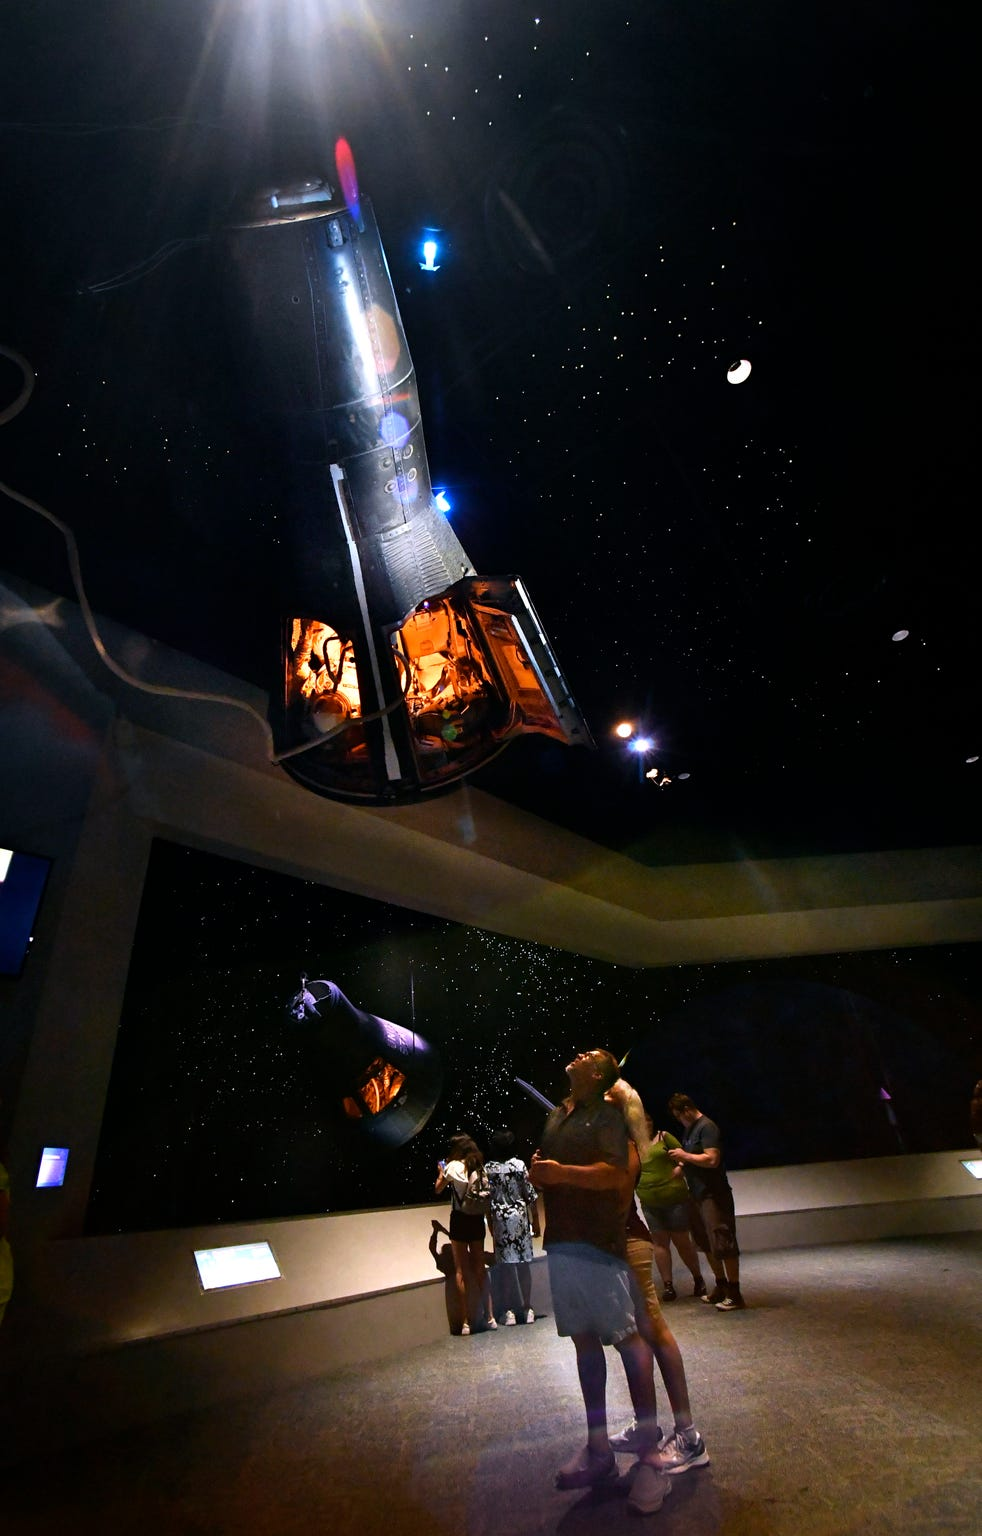 Brandon Littlelight looks at the Gemini V capsule, suspended from the ceiling in Starship Gallery, with his wife Tawnya. The couple were visiting Space Center Houston from Seattle.